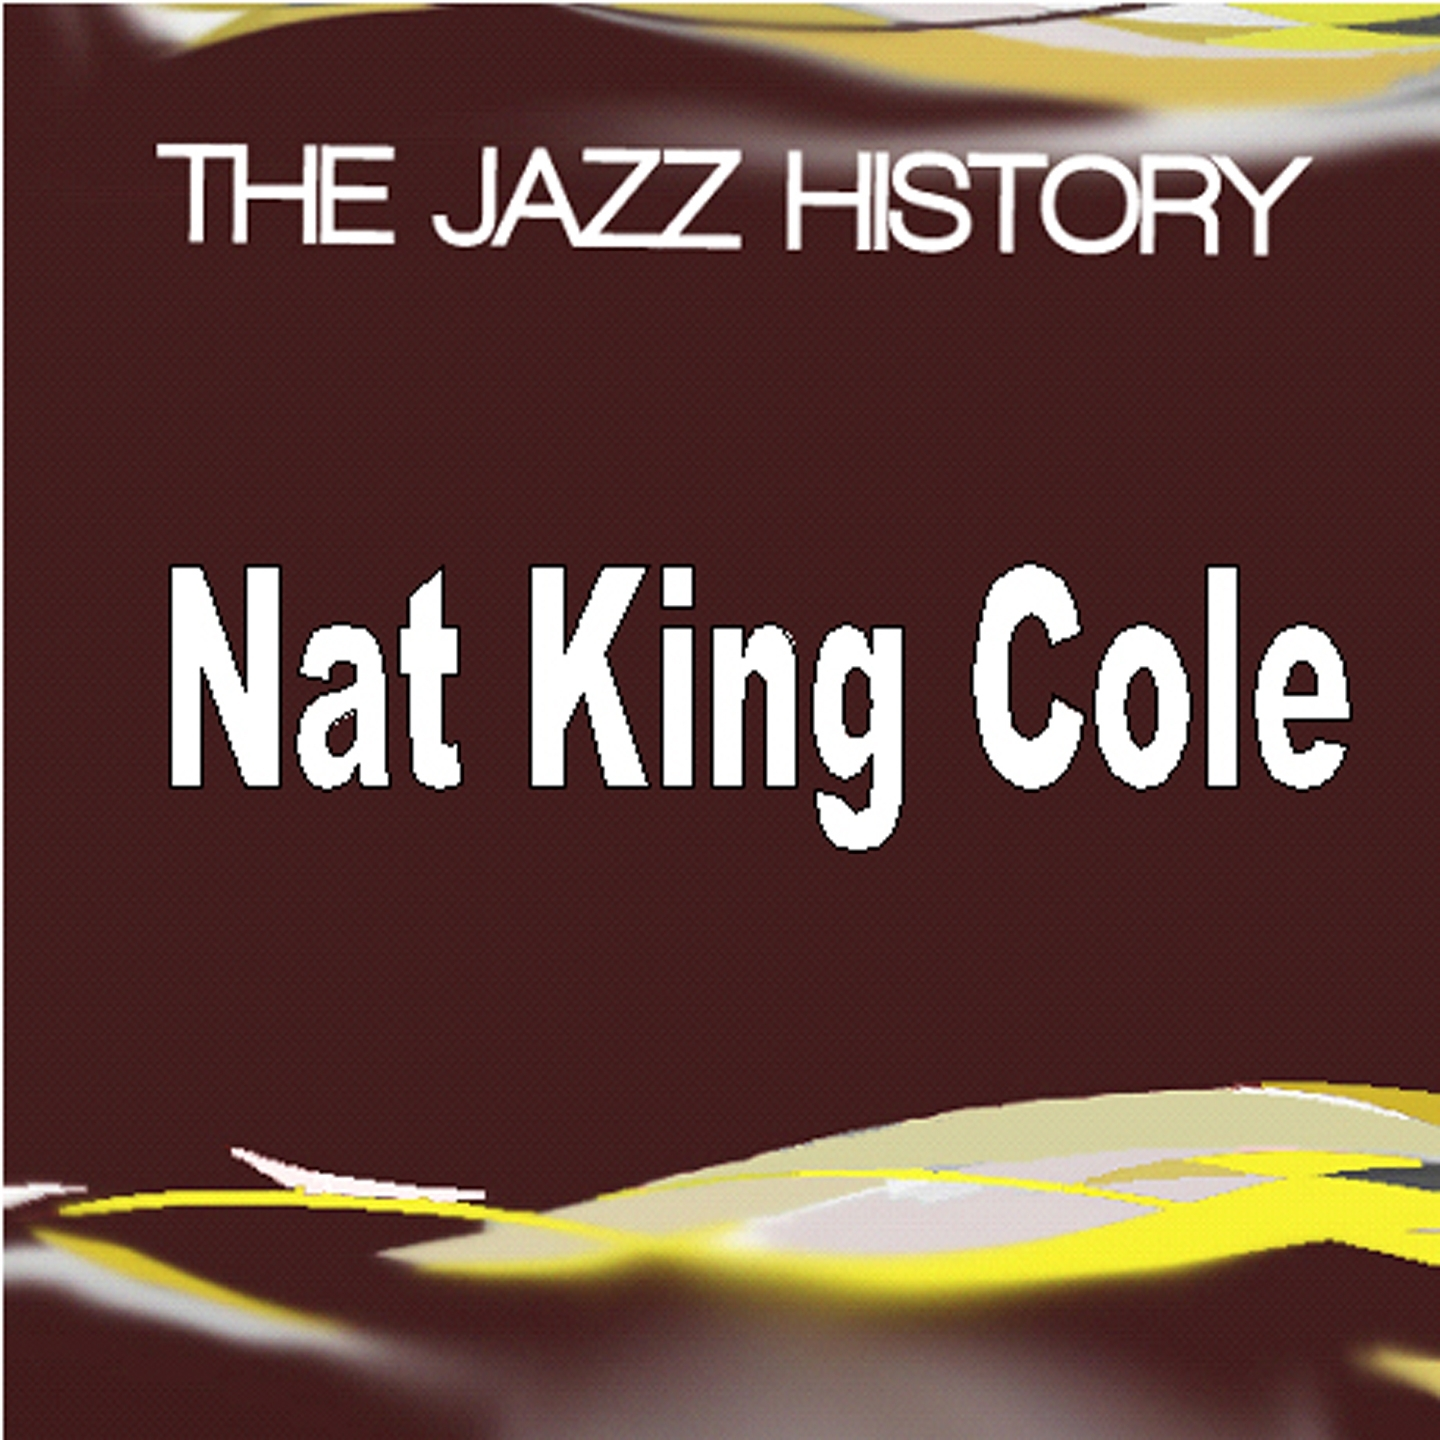 Jazz History Nat King cole